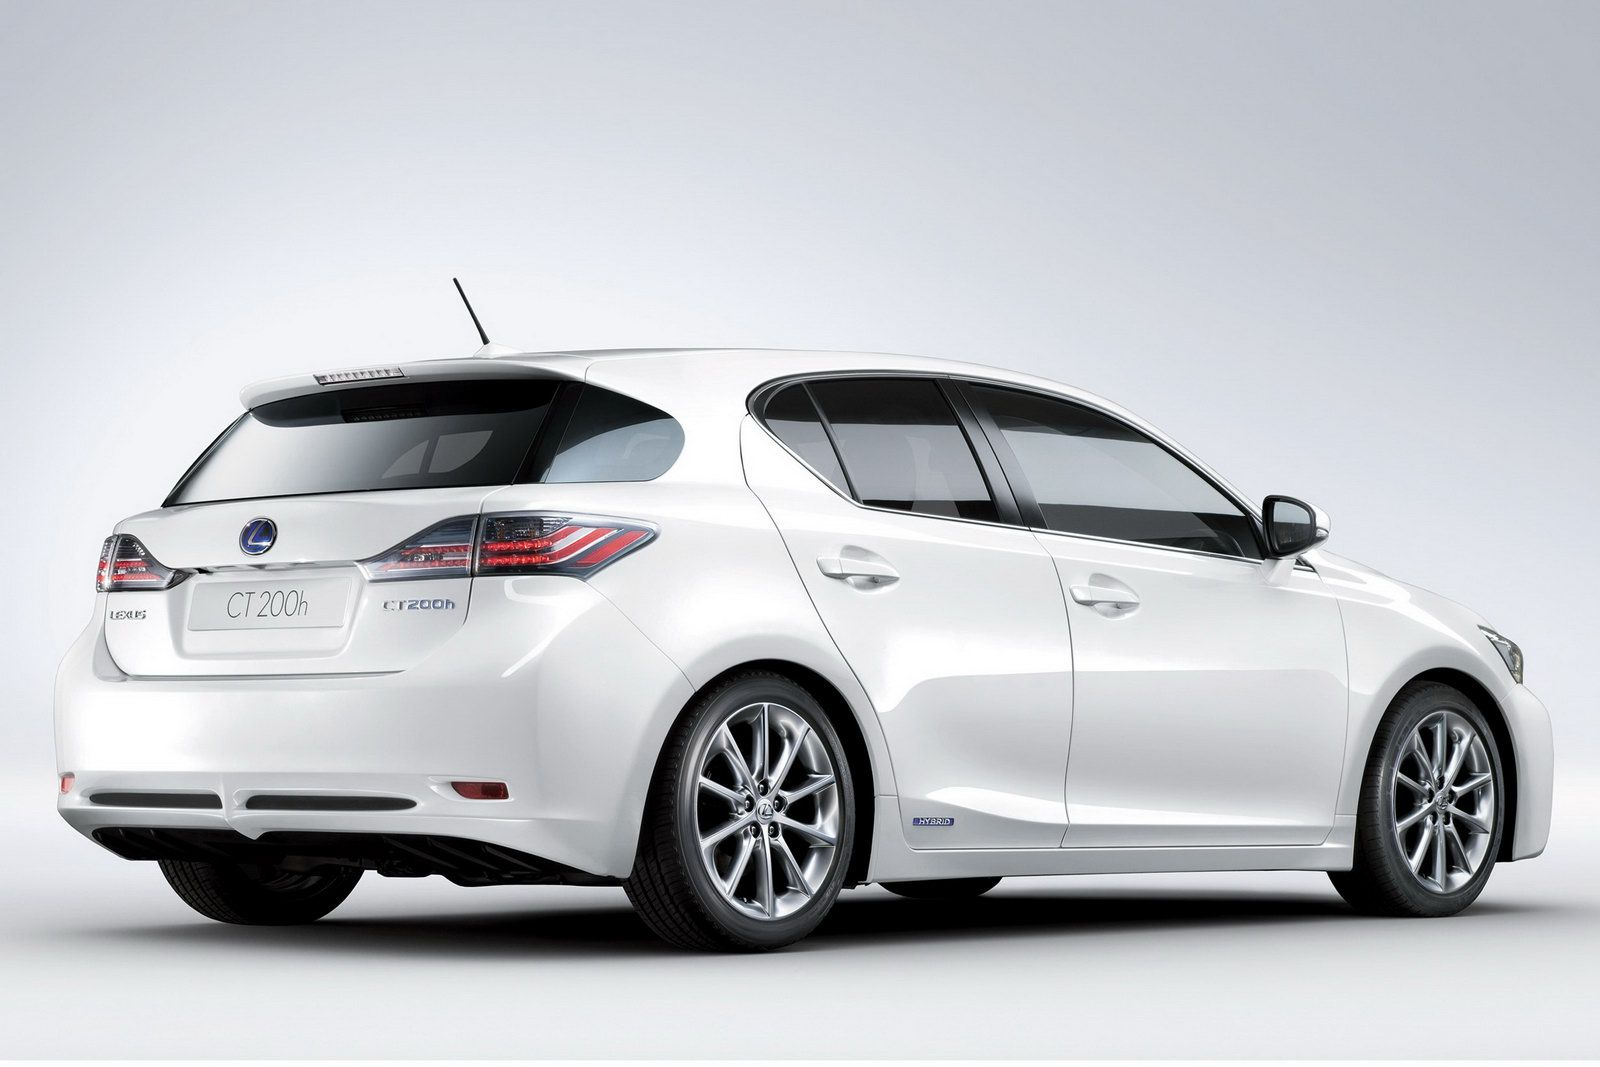 New lexus ct 200h official details and photos leaked lexus ct 200h 2011 img_3